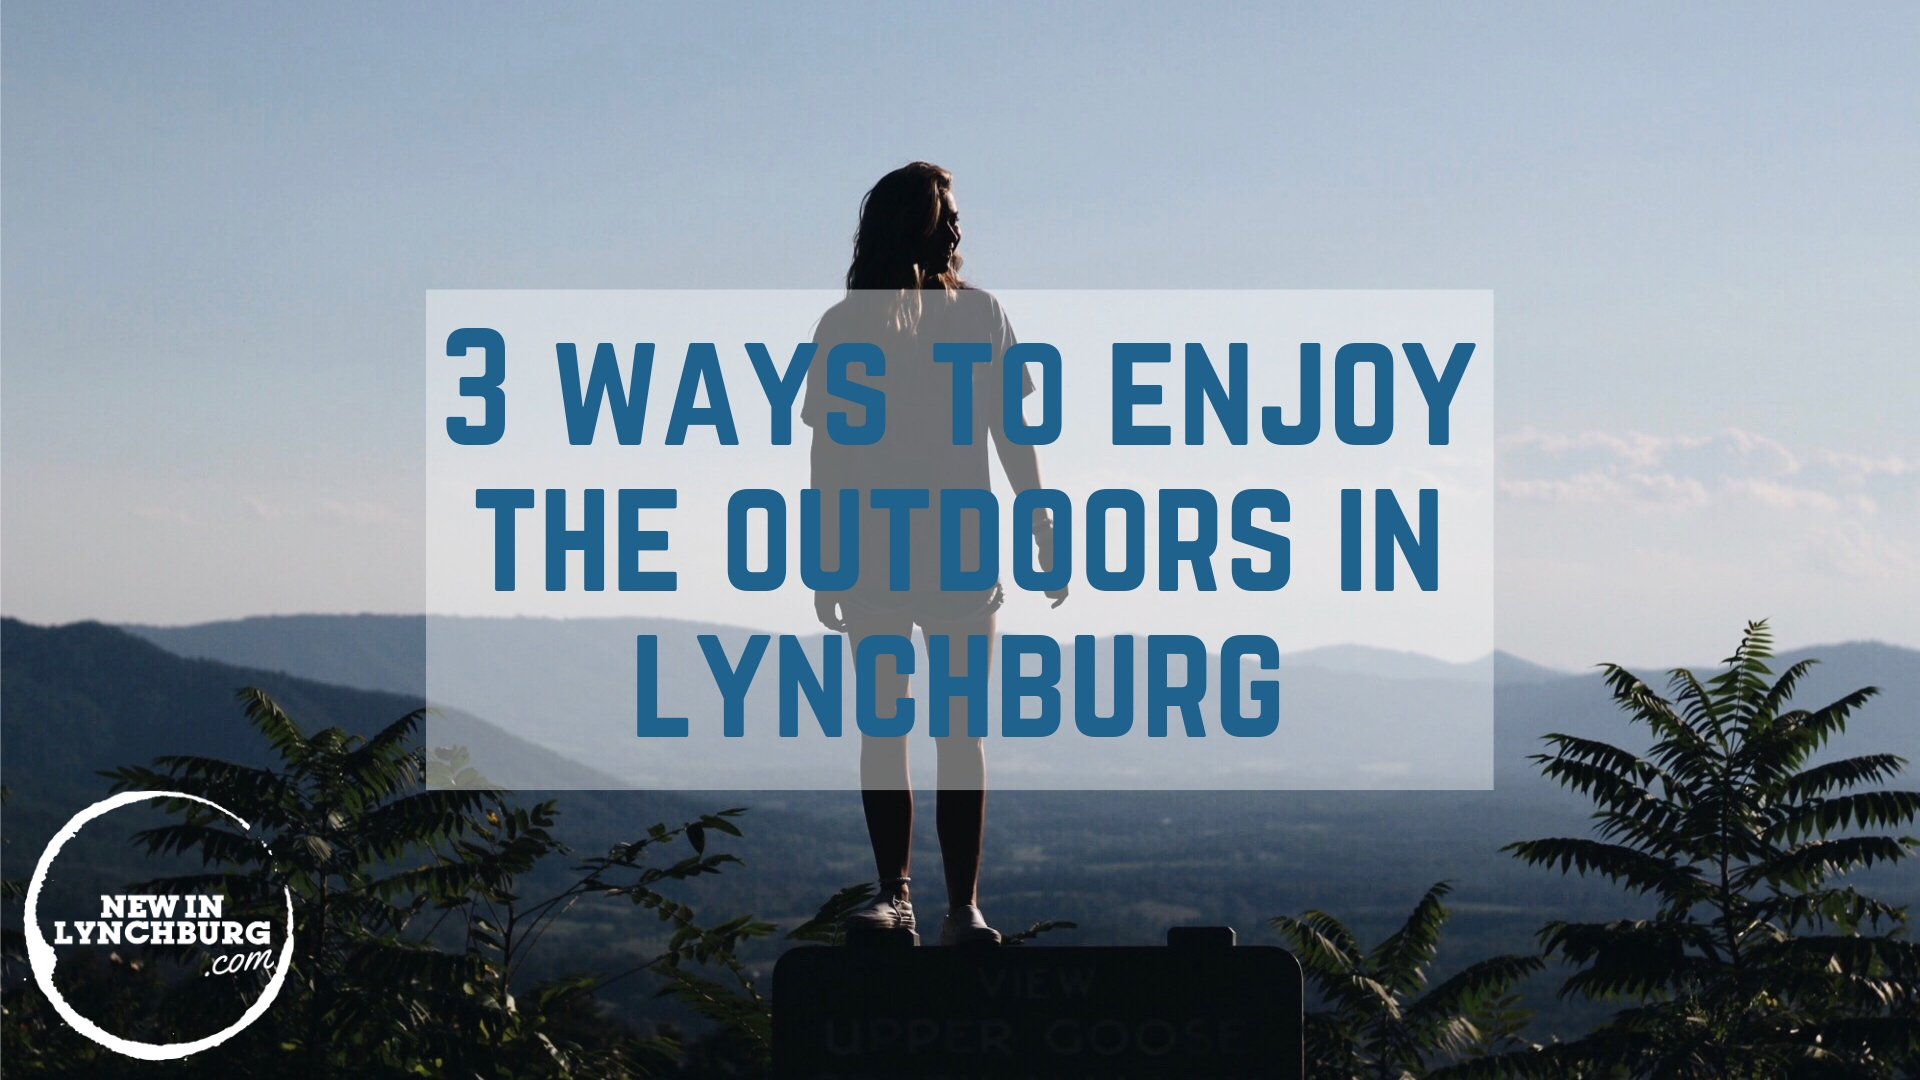 3 ways to enjoy the outdoors.jpg